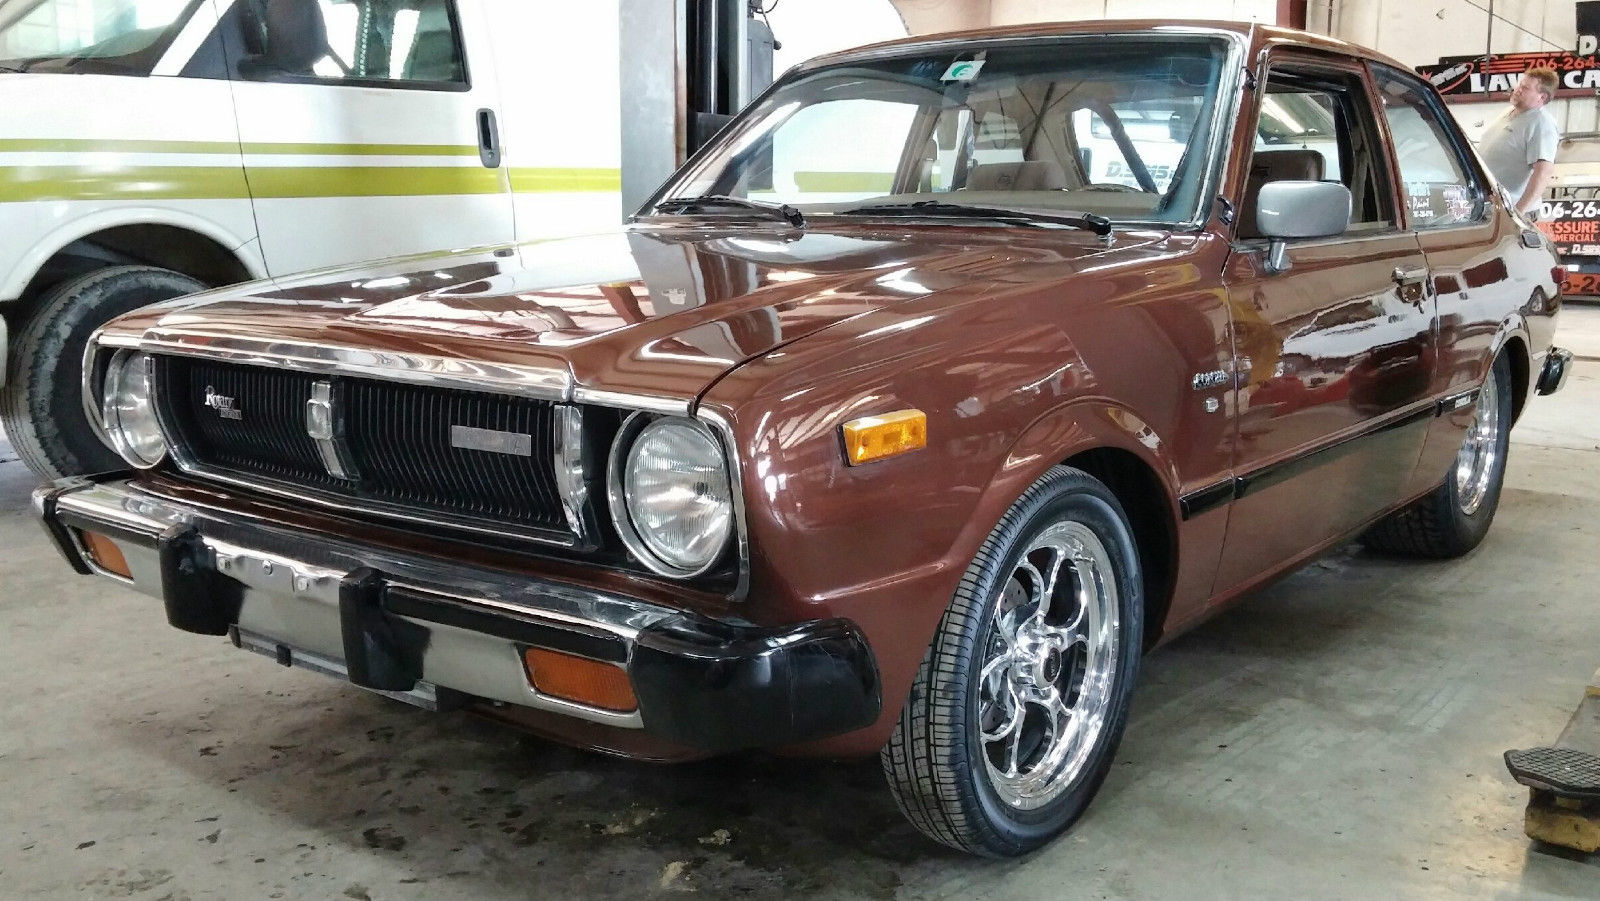 This 500hp, Turbo-Rotary Powered, 1979 Toyota Corolla Is Professionally Built And Totally Awesome